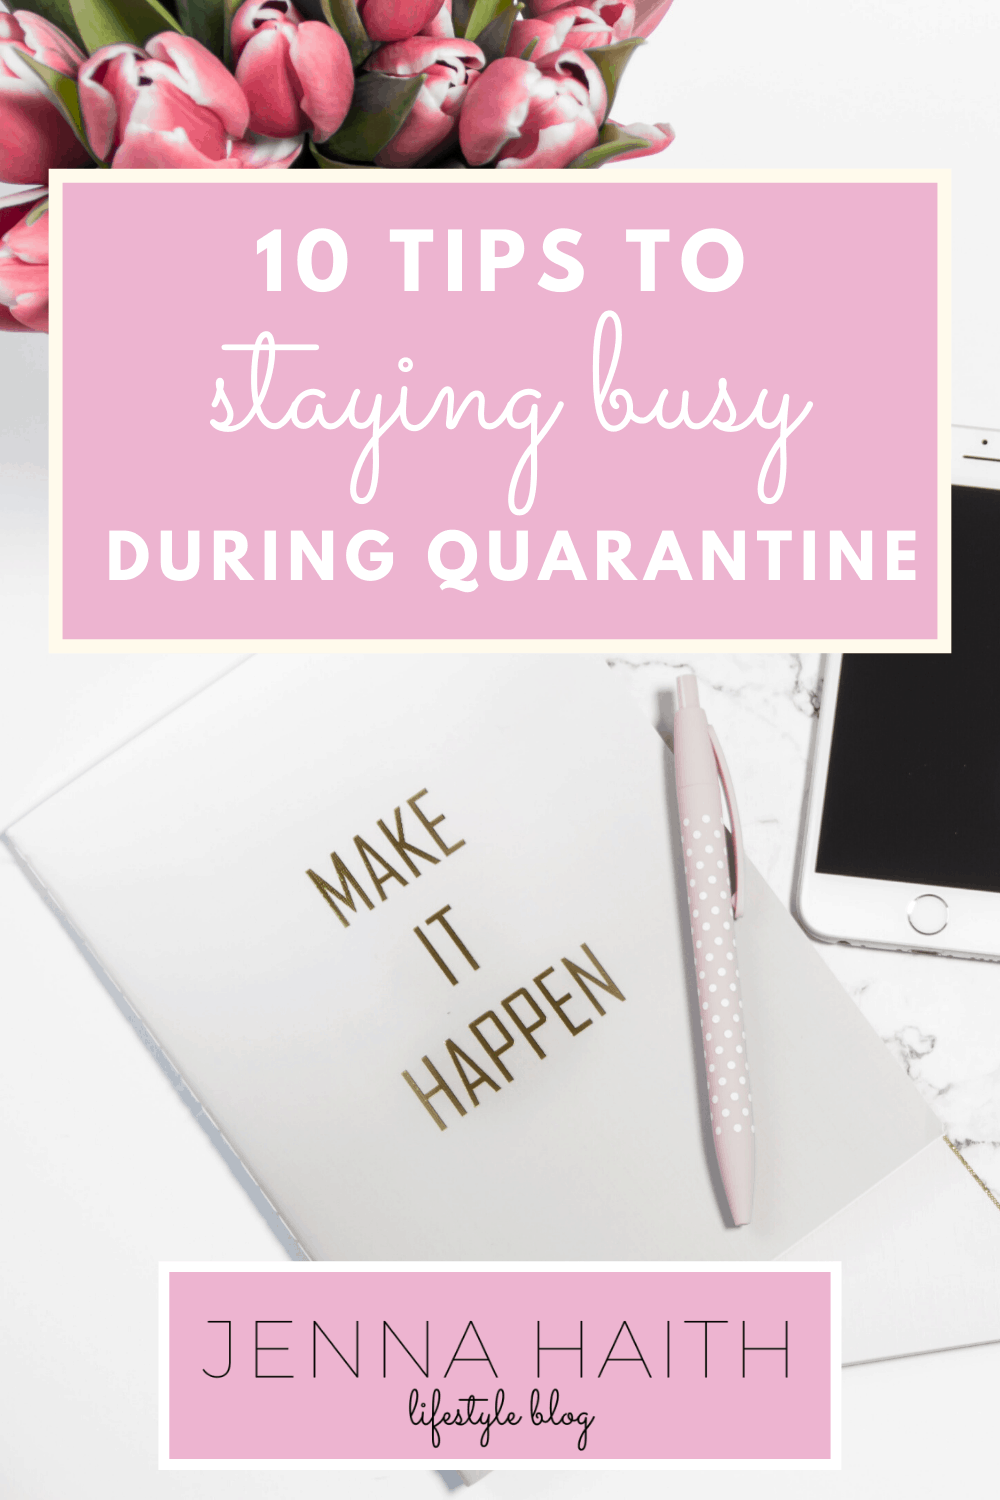 10 Tips To Staying Busy During Quarantine